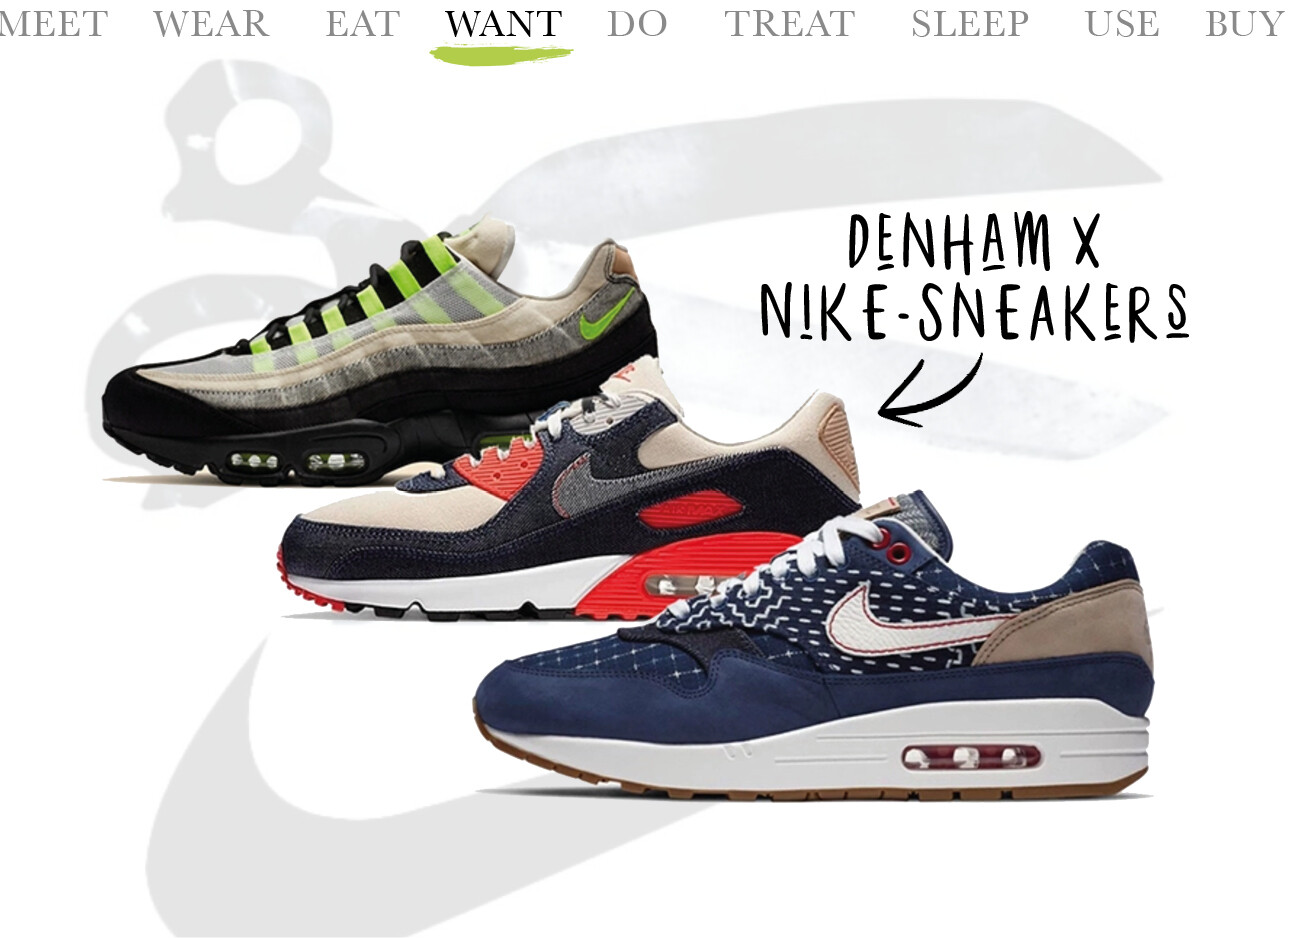 ToDay we WANT Denham x Nike-sneakers